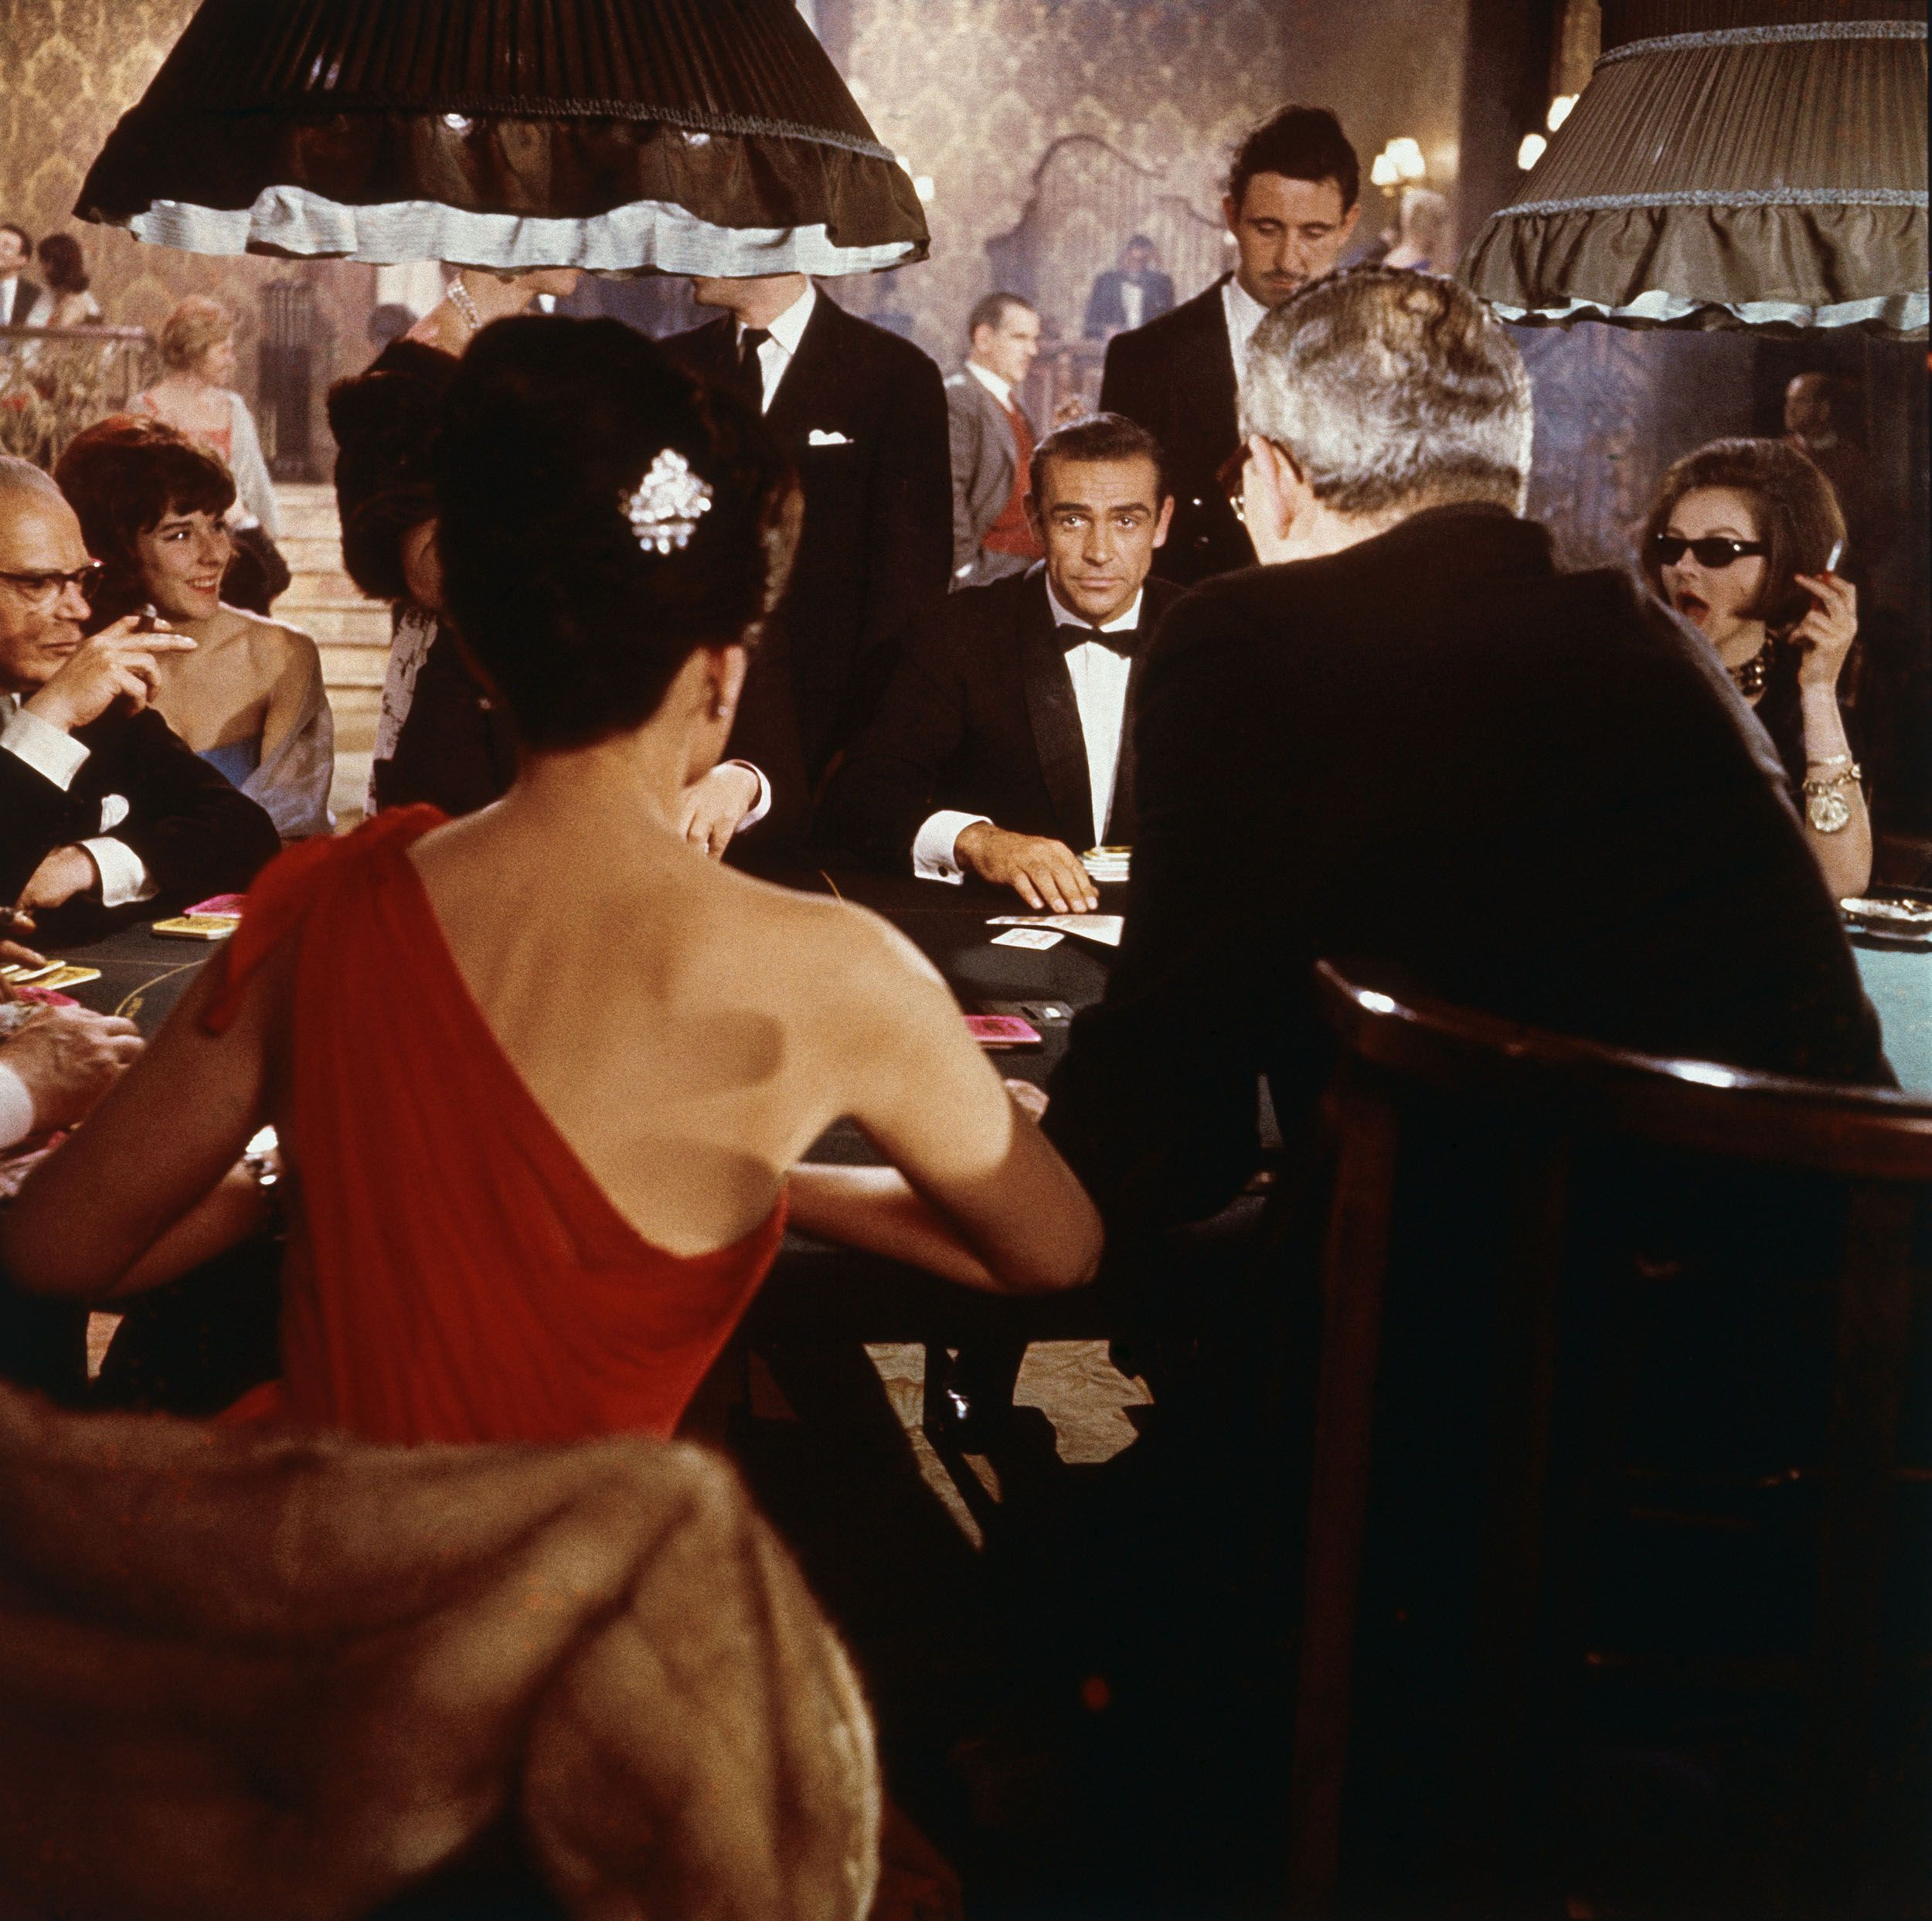 Sean Connery as James Bond sits at a casino card table in a scene from the film Dr. No.